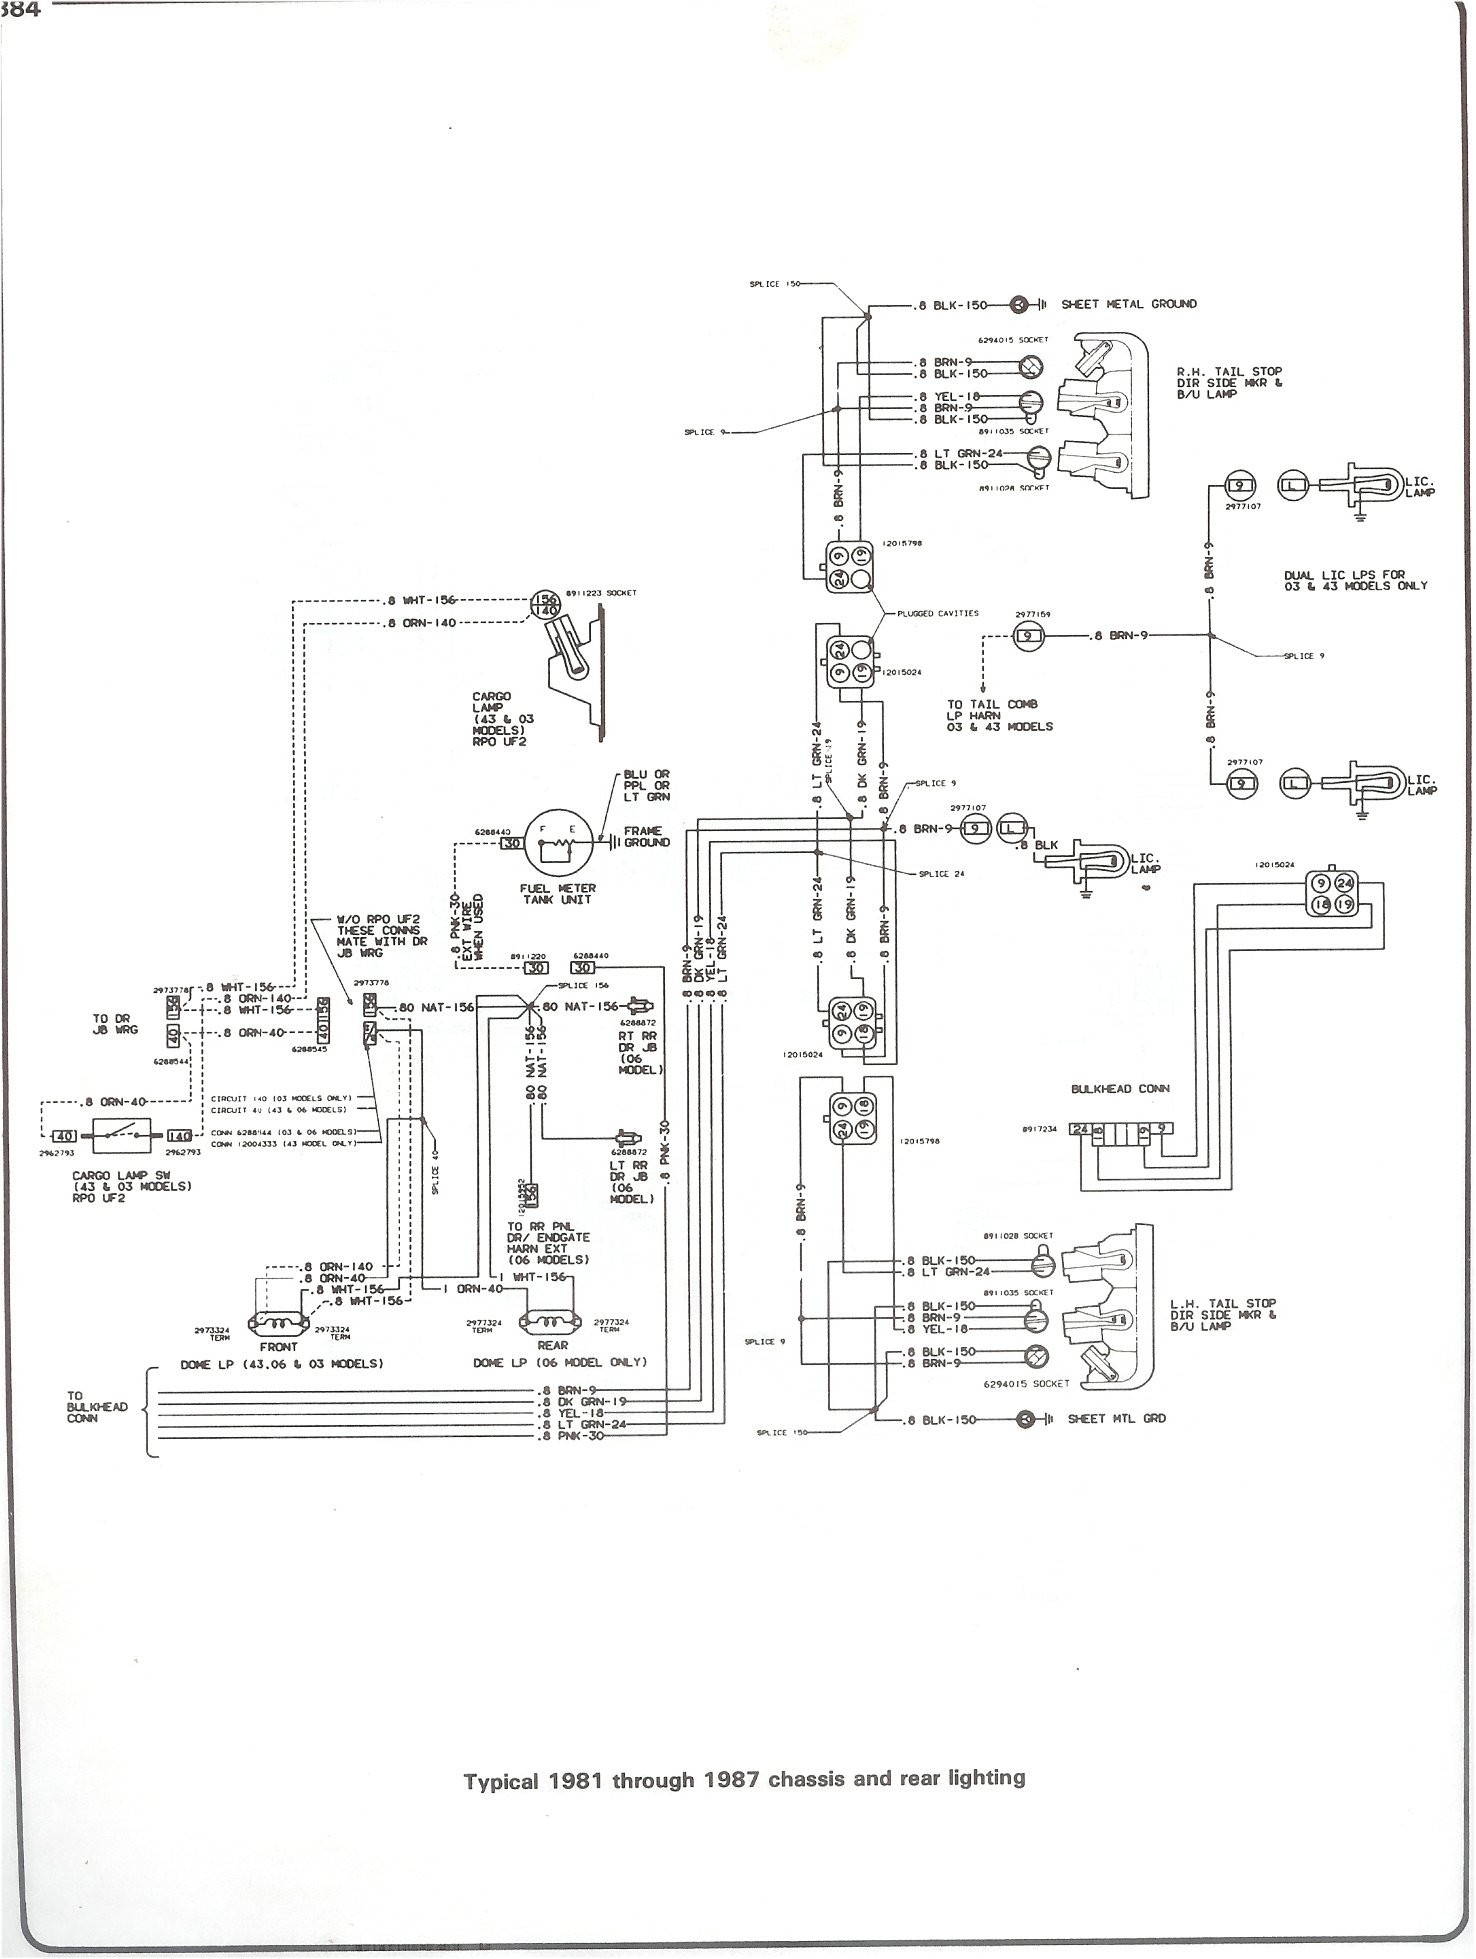 Electrical Schematic For Honda Hybrid